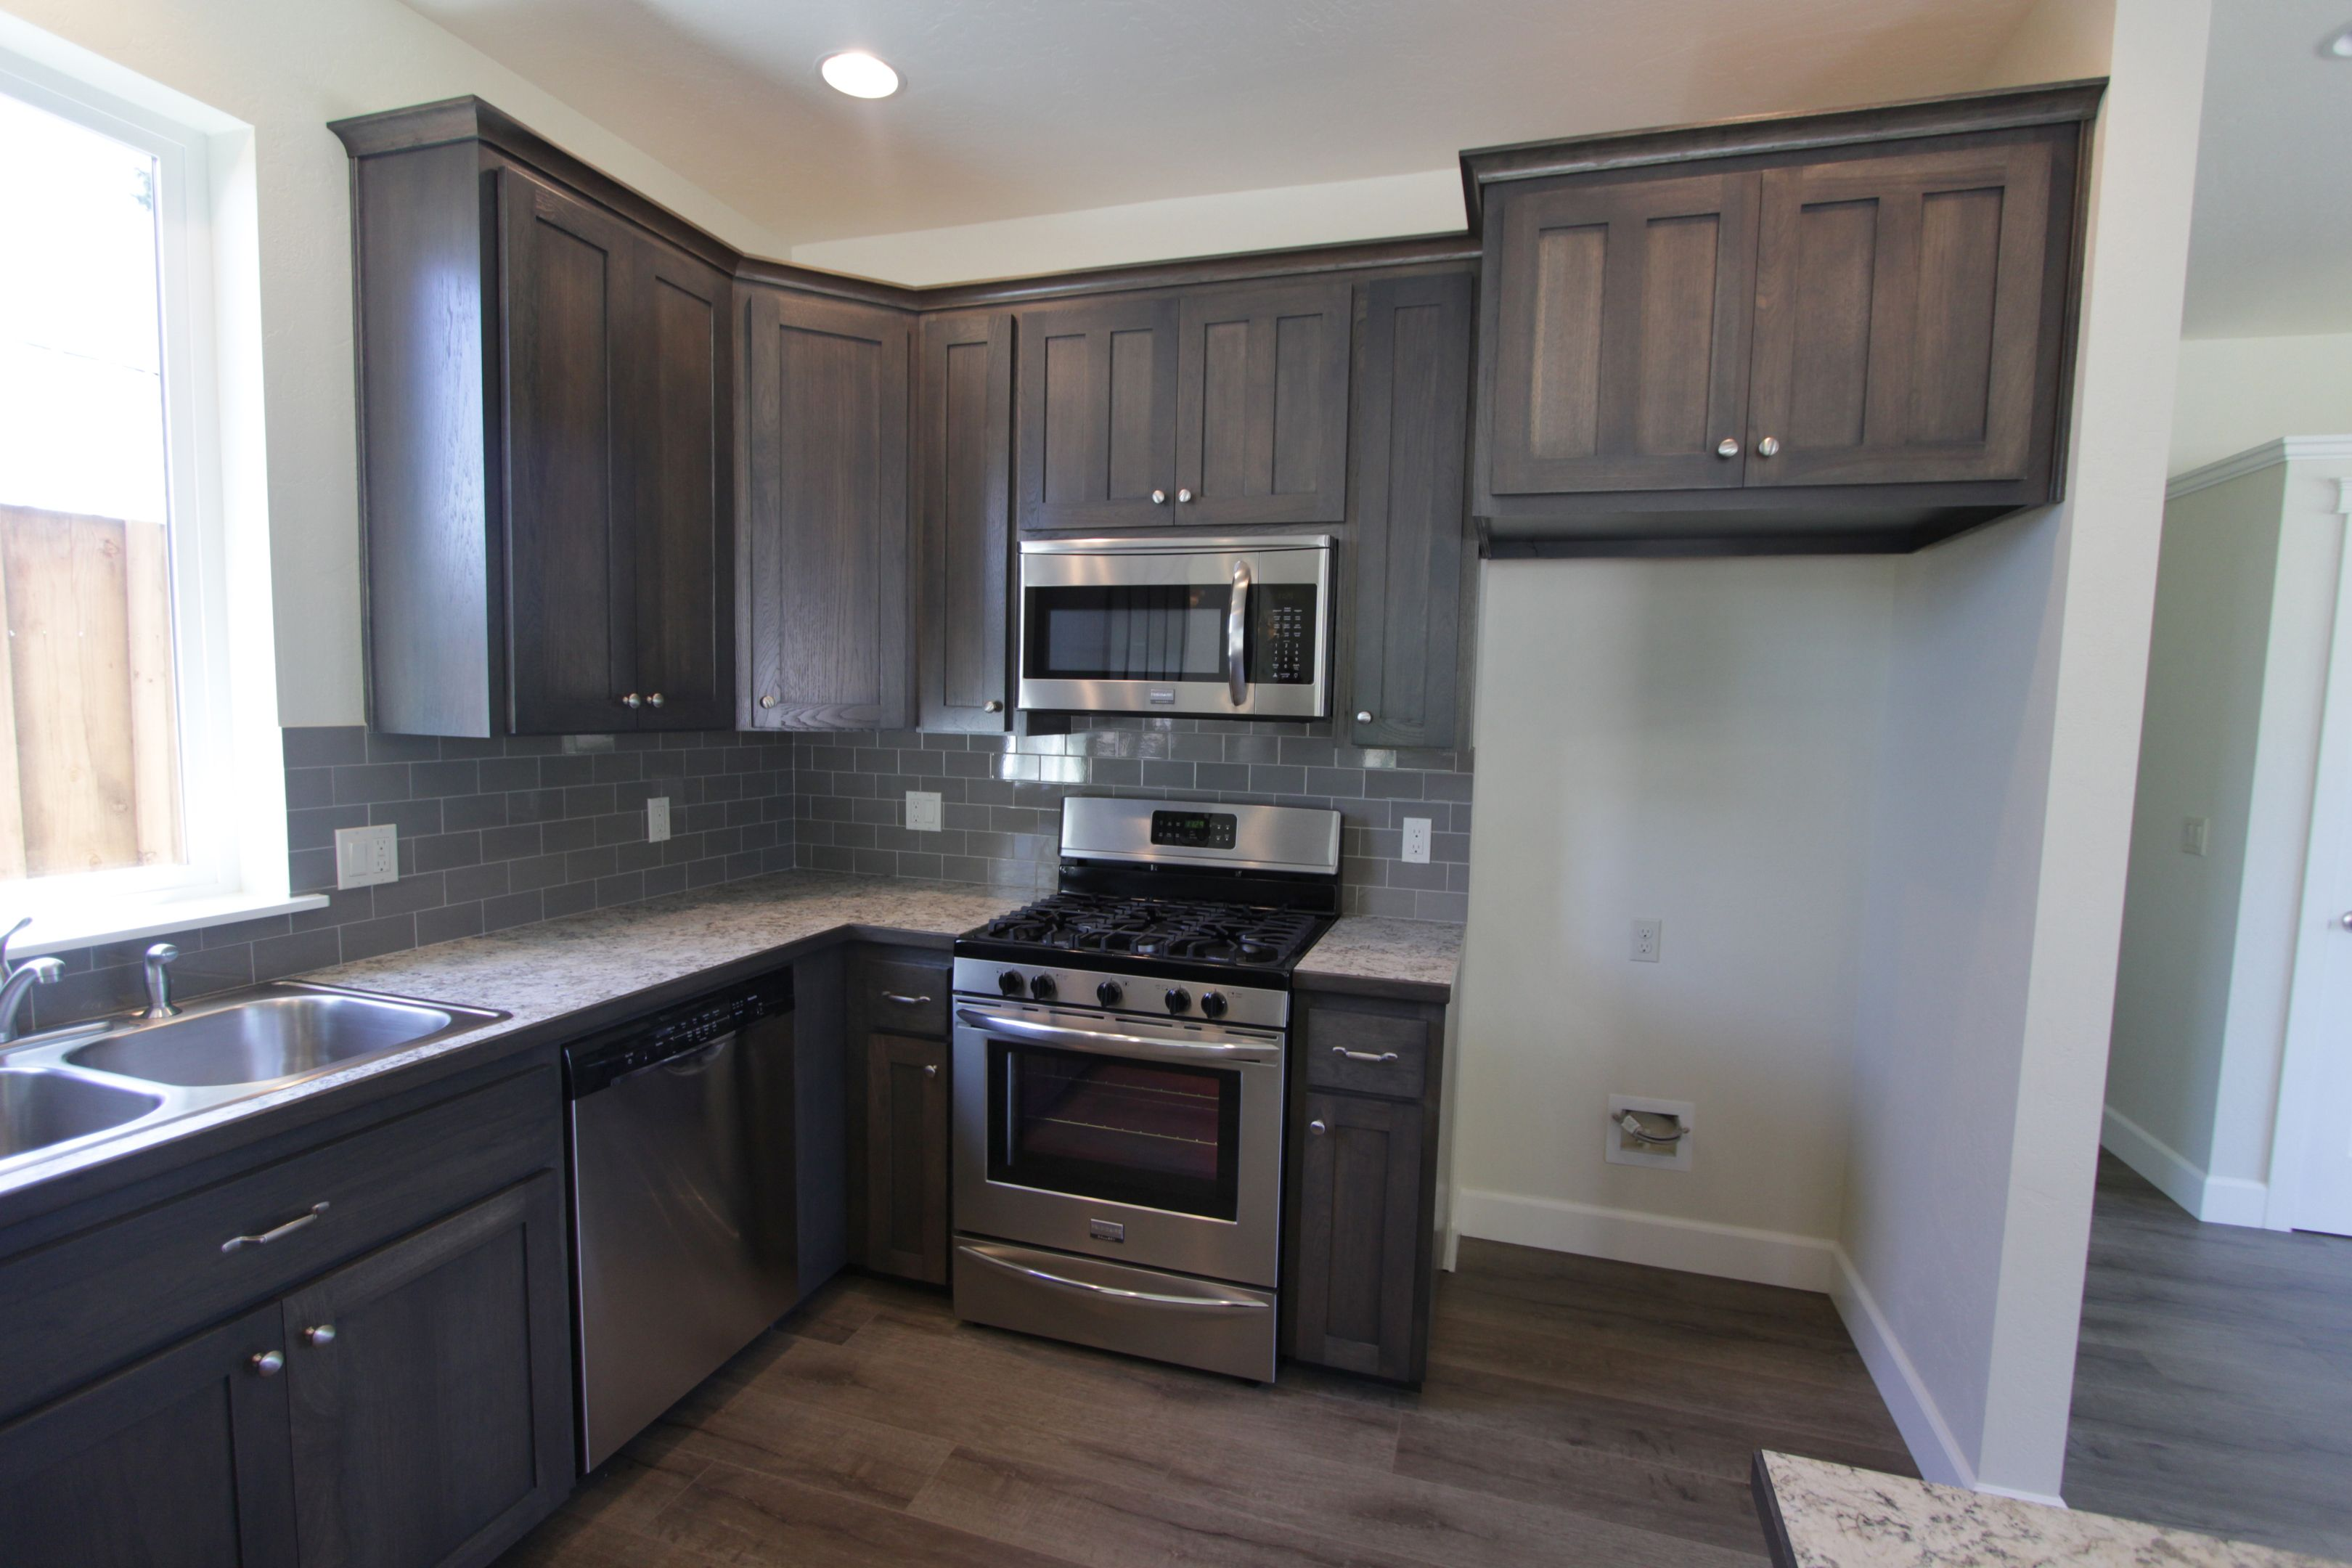 Hickory Shaker Style Kitchen Cabinets Best Kitchen Gallery - Hickory shaker style kitchen cabinets